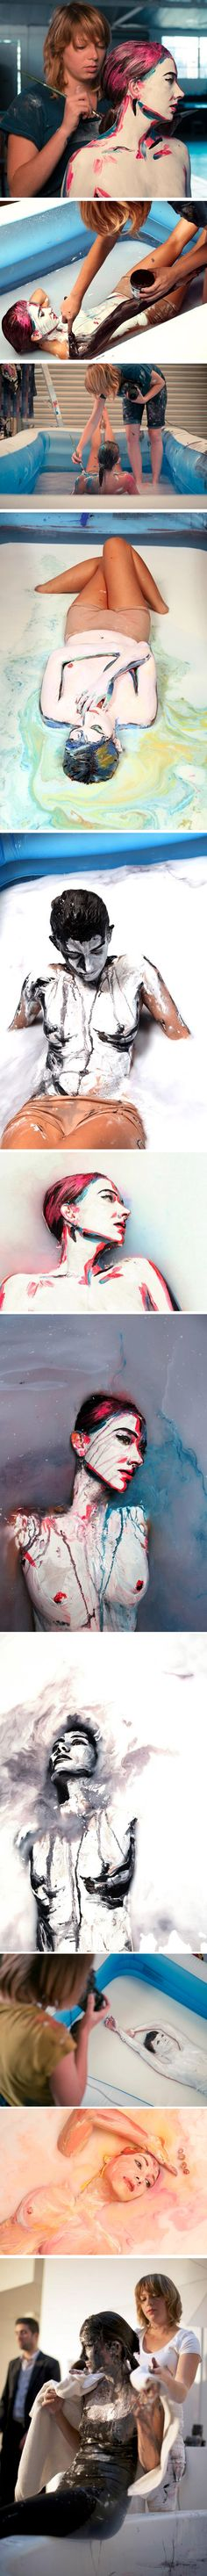 """Artists Alexa Meade and Sheila Vand have teamed up to create """"MILK: what will you make of me?"""" Alexa paints Sheila's portrait directly on top of her body before Sheila submerges in a pool of milk."""